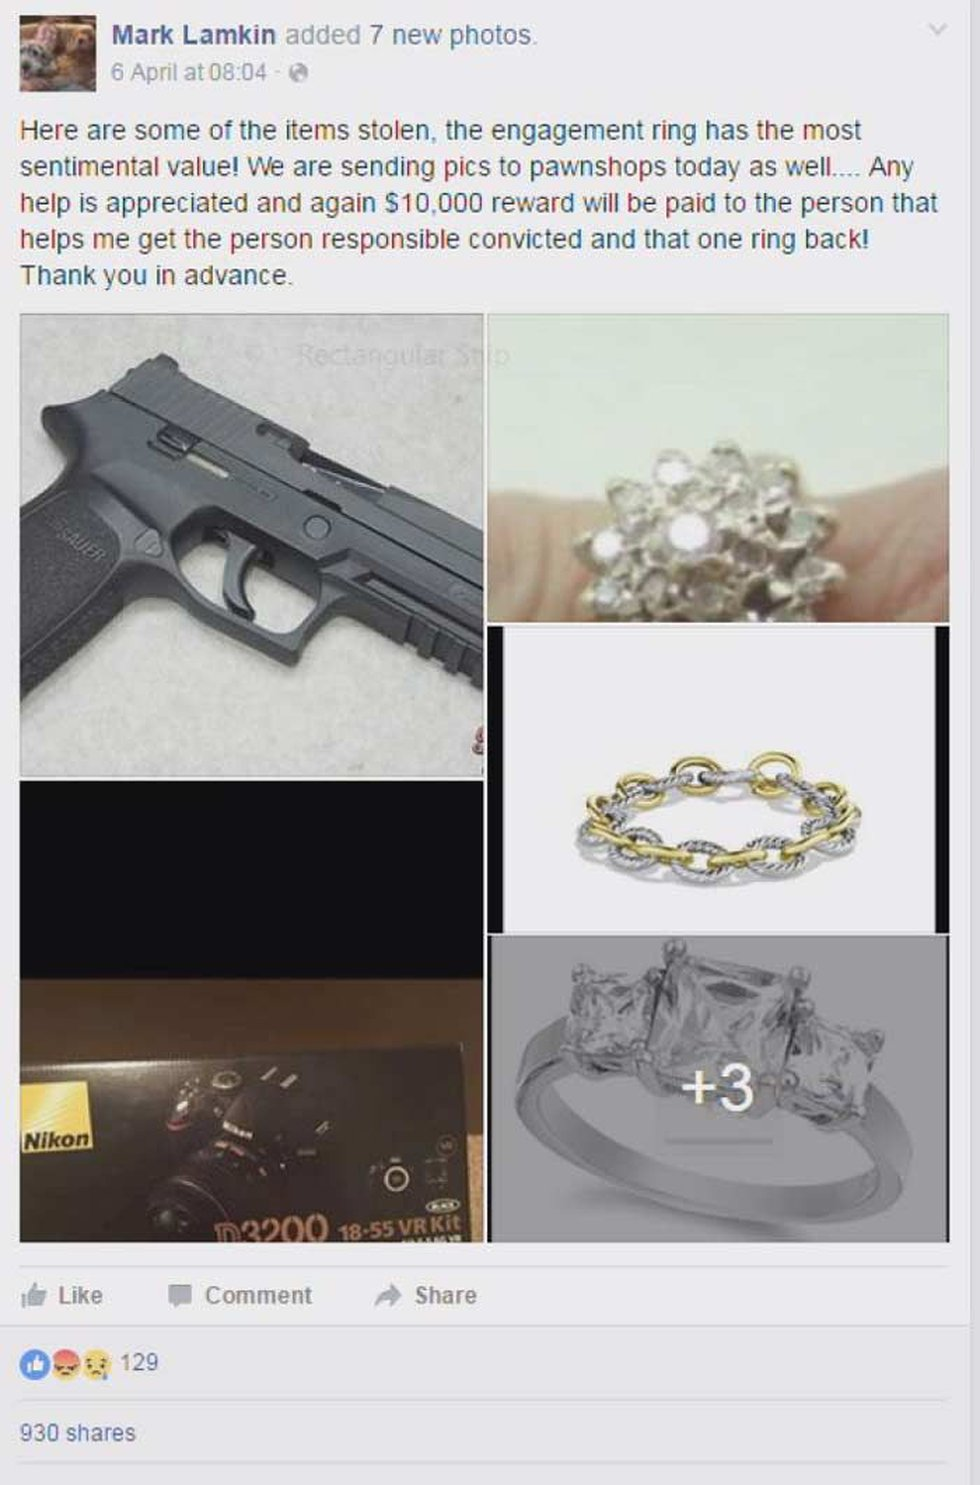 Here are some of the items taken from Lamkin's home. (Source: Facebook)